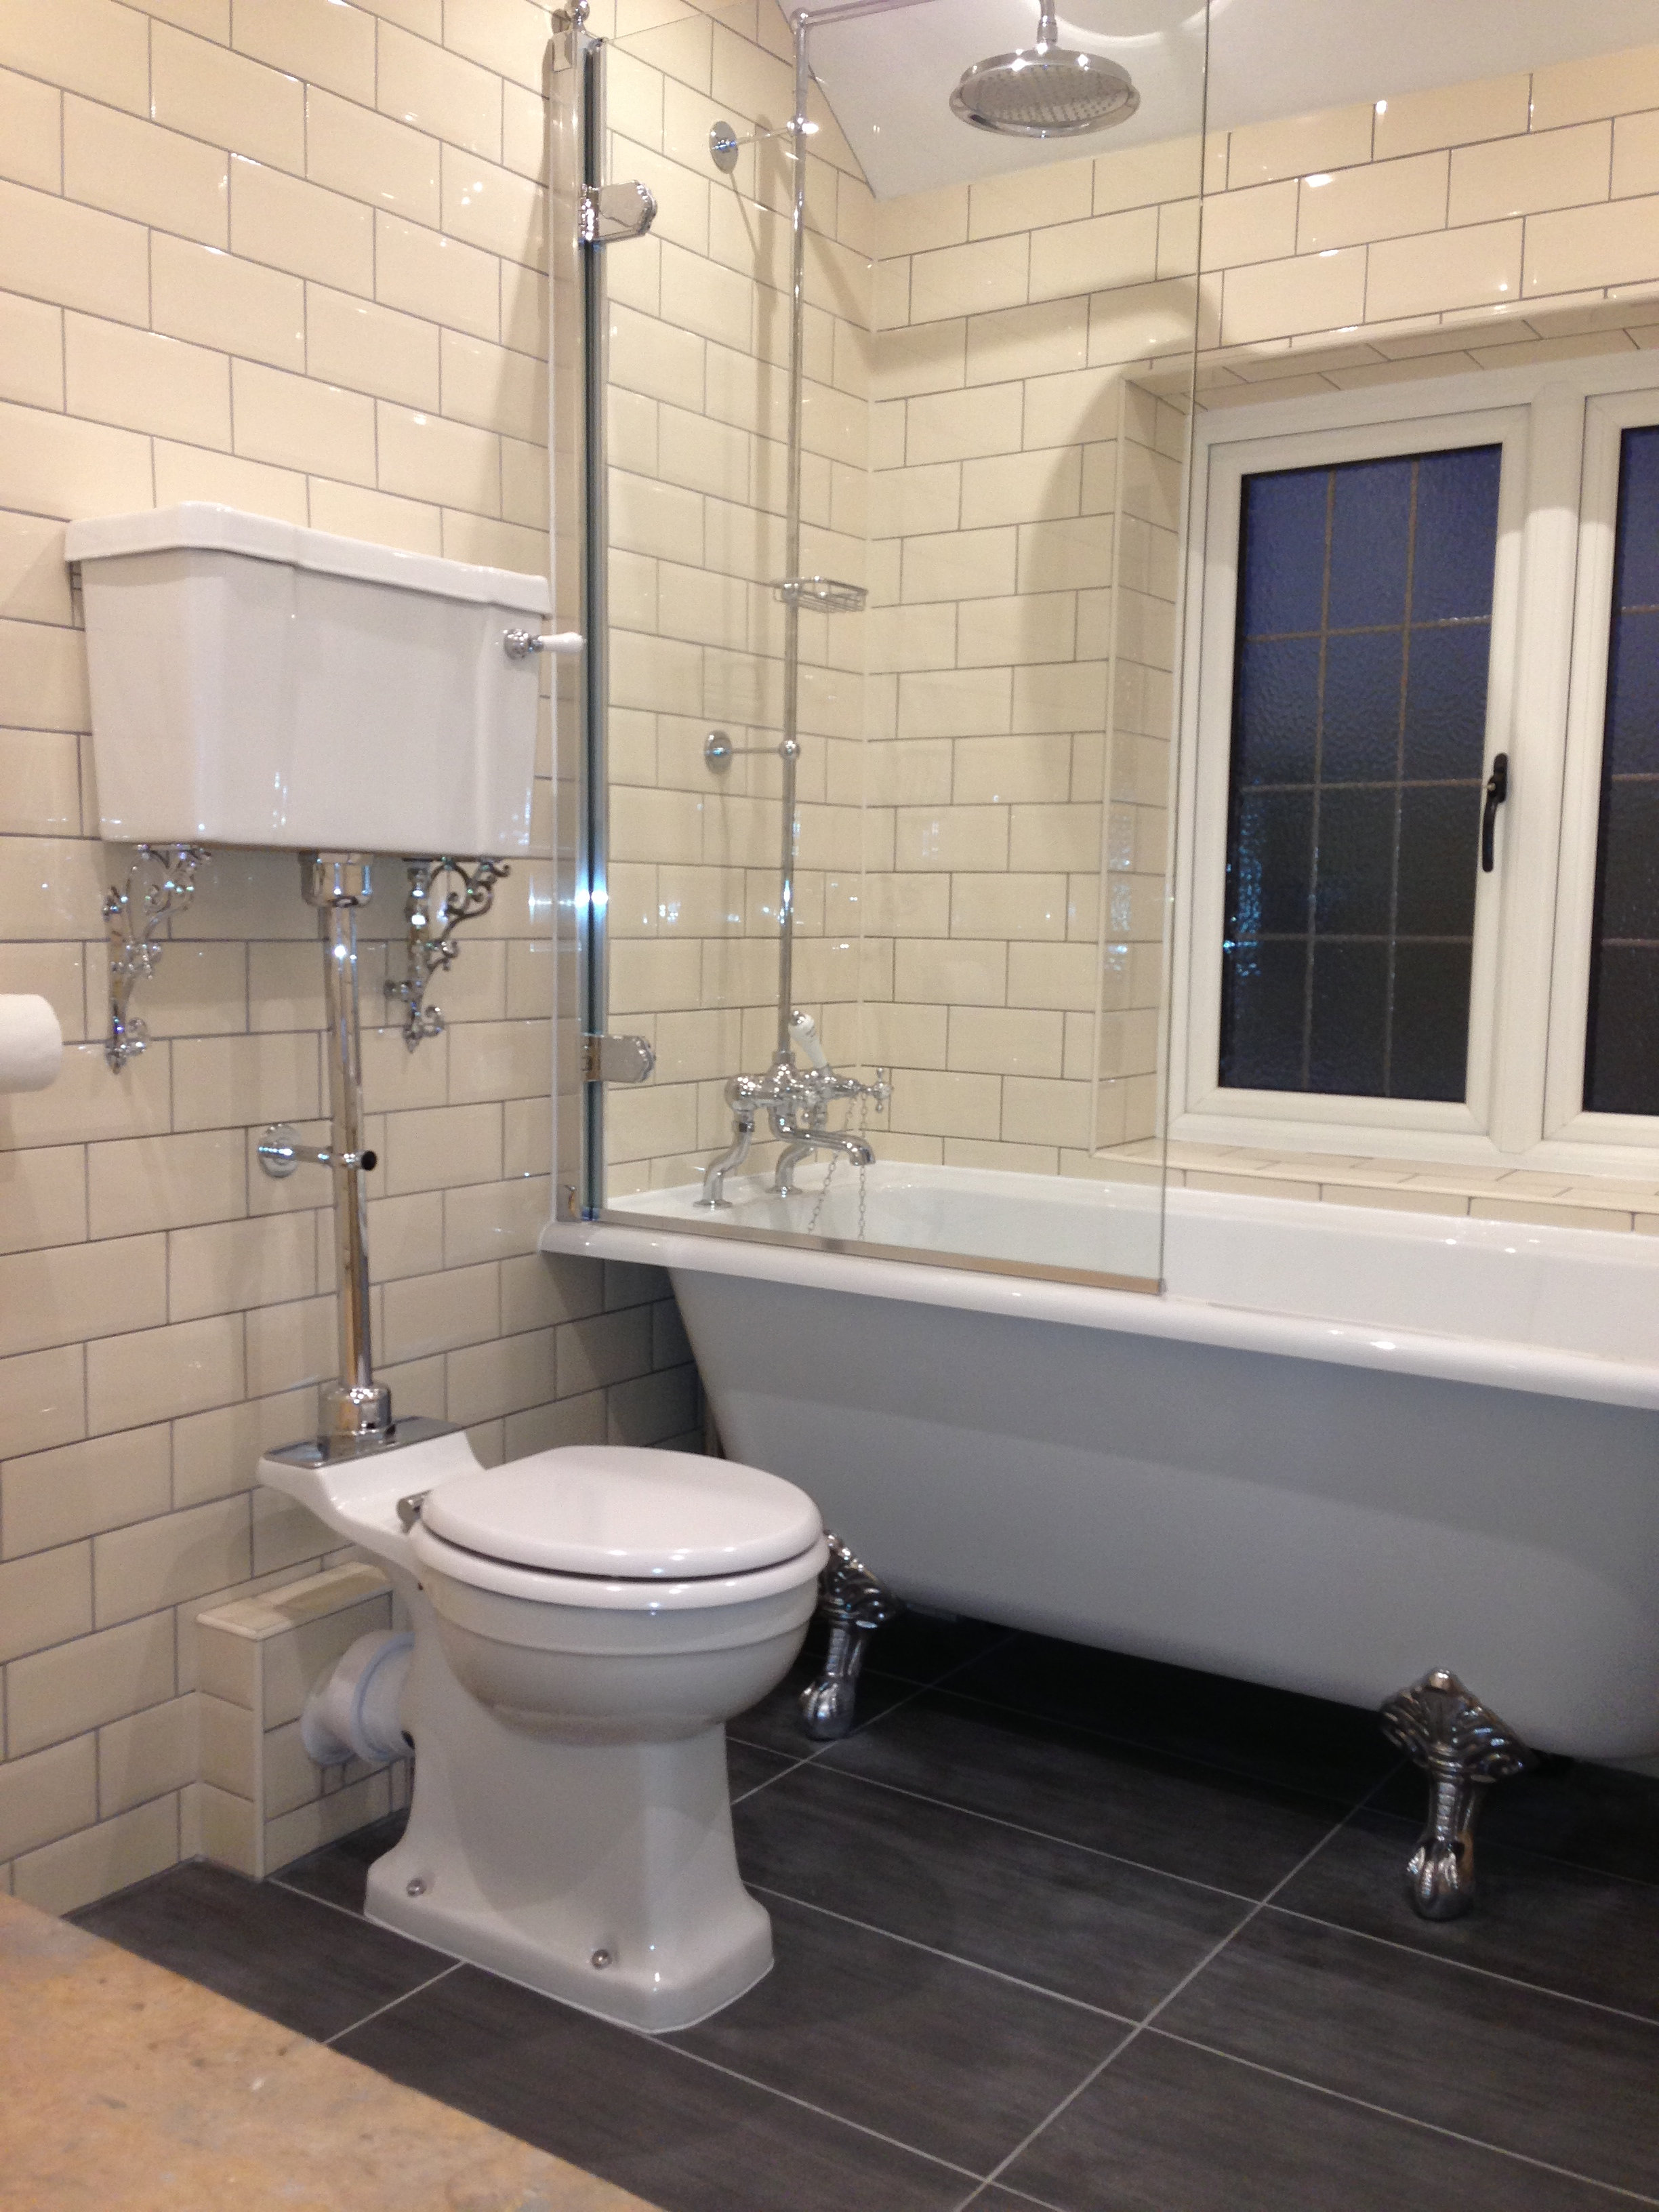 Fantastic If Youve Set Your Sights On Remodelling Your Bathroom, A Simple And Elegant Victorian  Tiles Can Provide A Marble Look While Wooden Floor Panelling Or Ceramic Tiles With A Wood Grain Also Work Well With Both The Bathtub And The Style